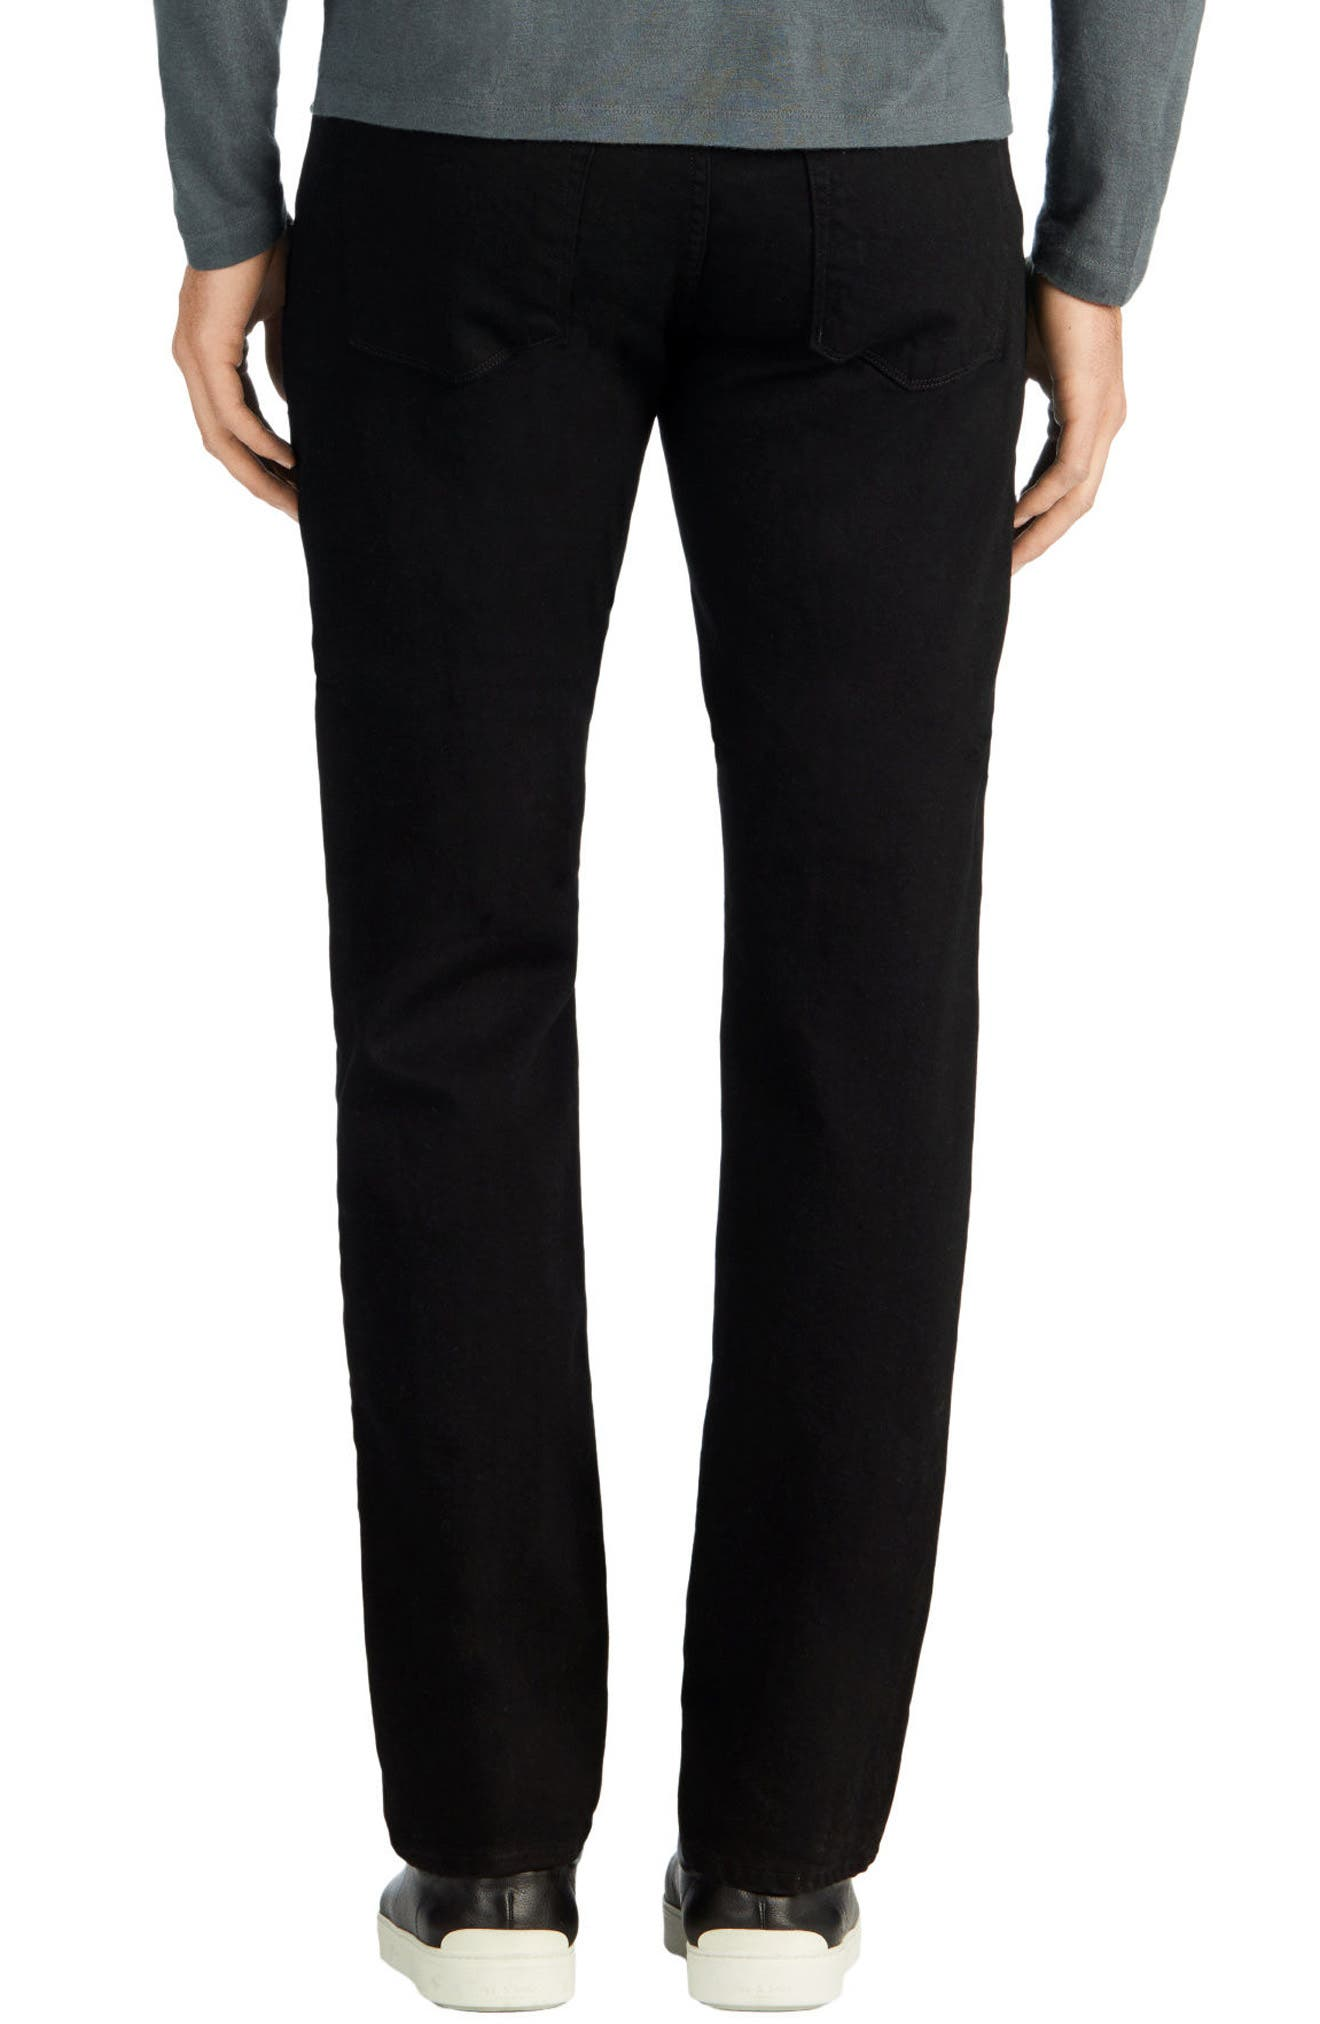 J BRAND,                             Kane Slim Straight Leg Jeans,                             Alternate thumbnail 2, color,                             TRIVOR BLACK